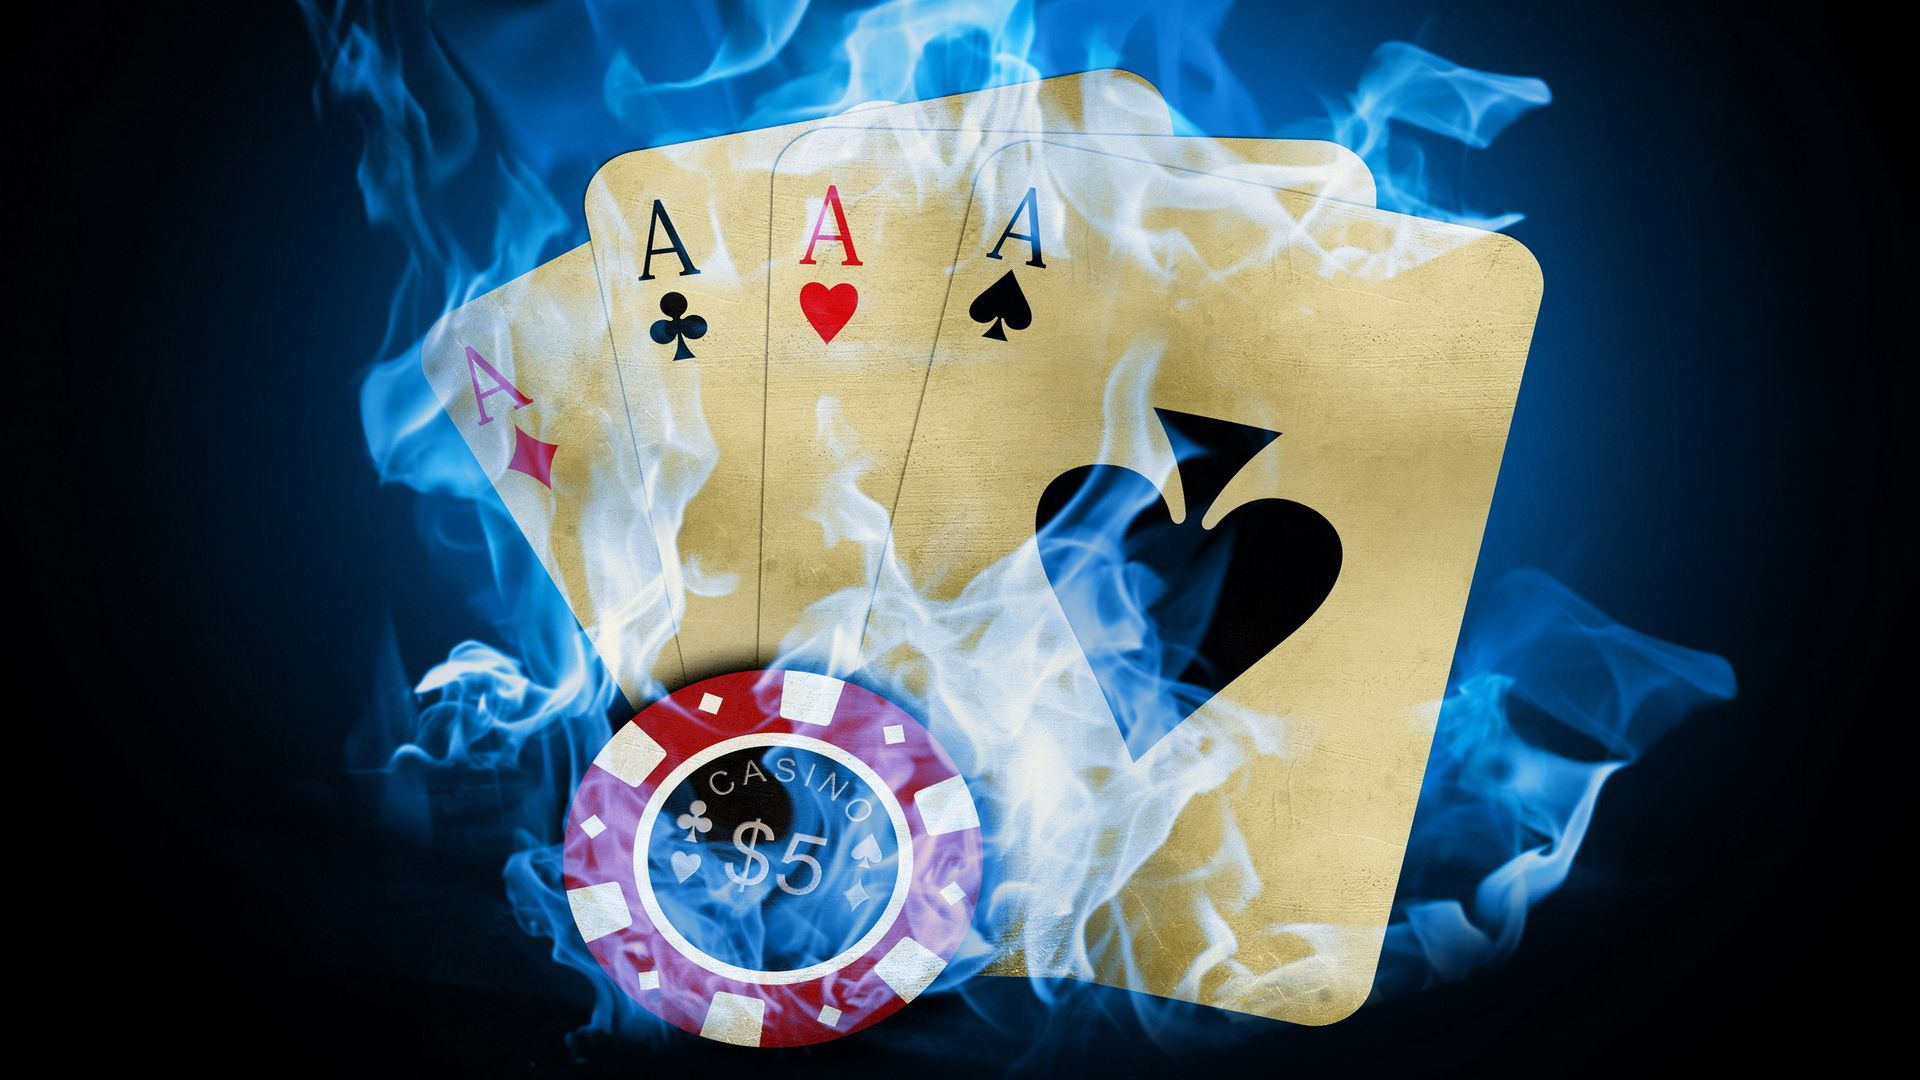 Know how popular an online casino (คาสิโนออนไลน์) is so that you can register and win money easily.